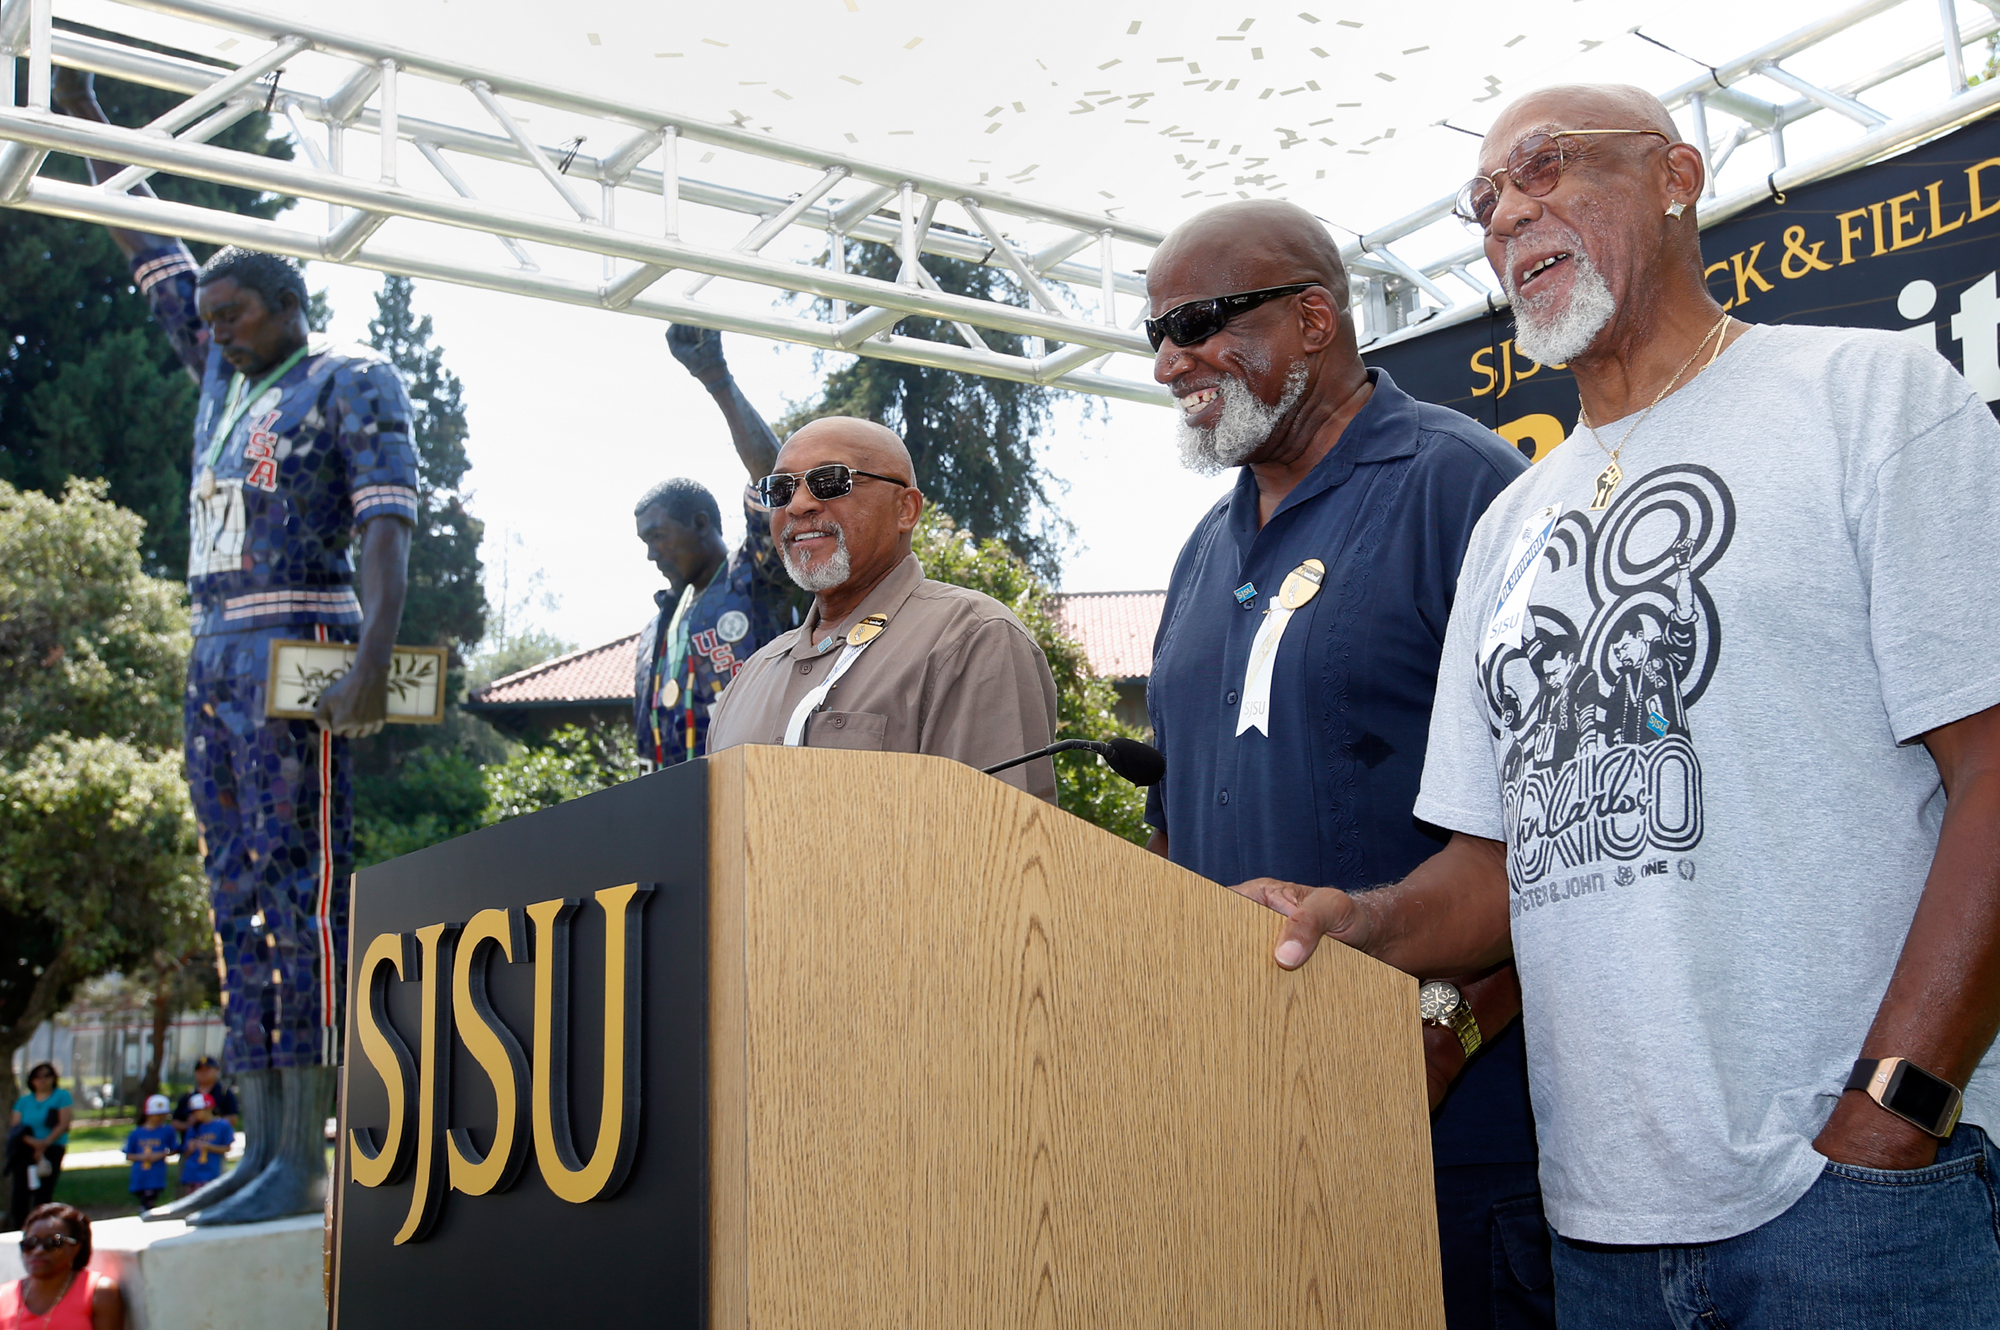 Sociology professor Harry Edwards stands between Spartan track star Tommie Smith, left, and John Carlos, as San Jose State University announces the return of the track and field program Monday, Aug. 1, 2016. The announcement was made next to the 24-foot-tall statutes of the two track stars famous '68 Olympics salute.